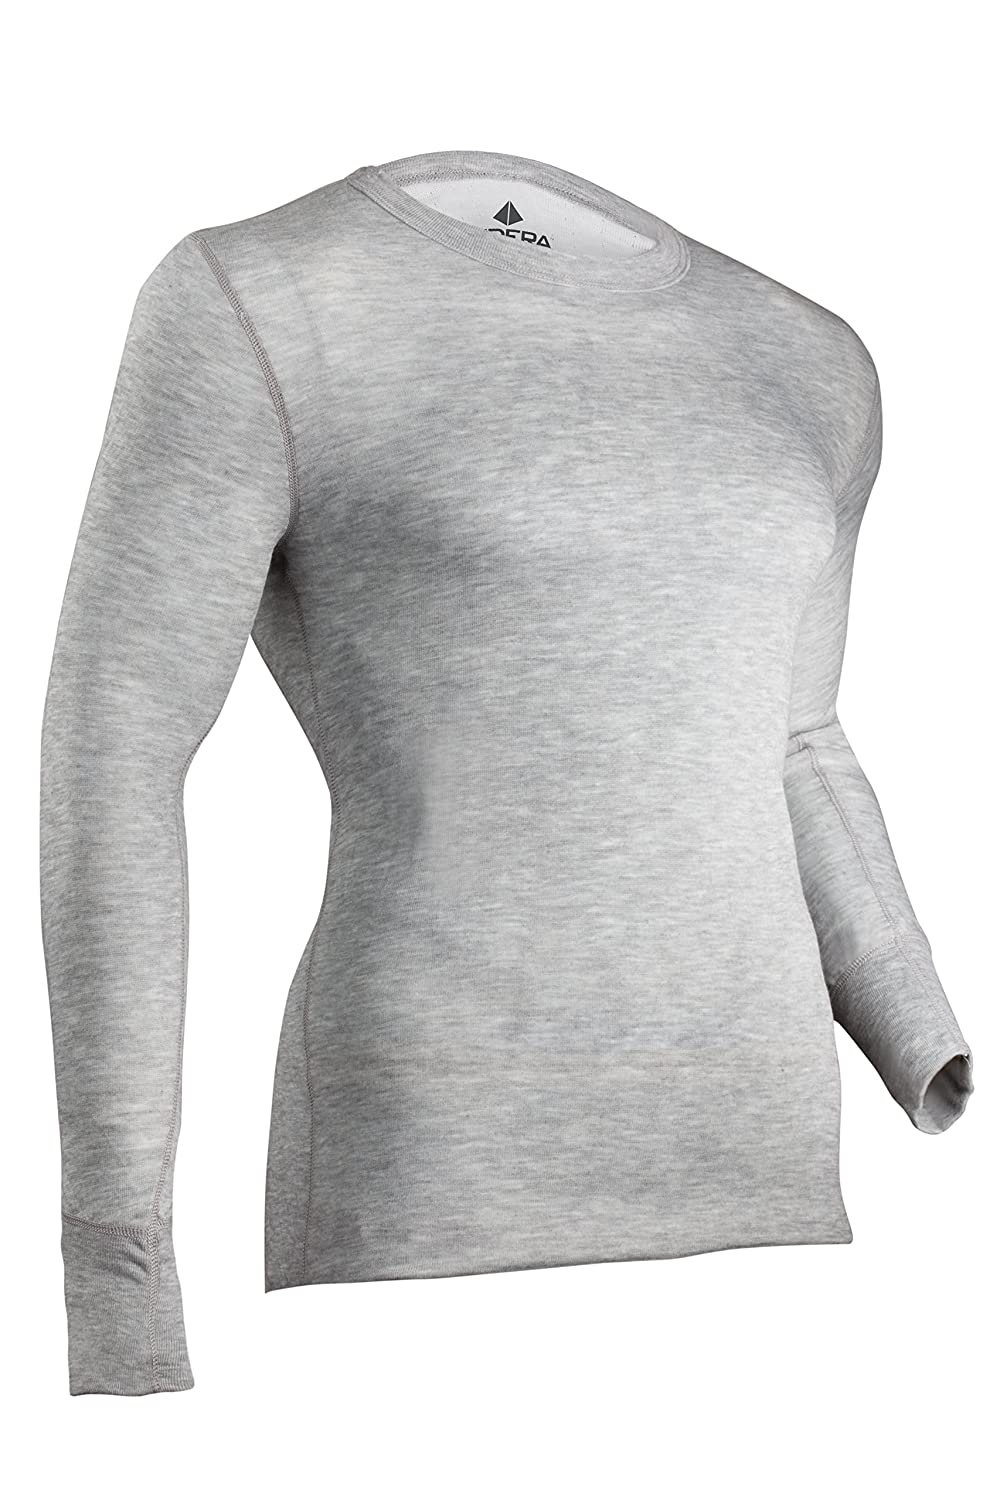 Indera Men's Tall Two-Layer Performance Thermal Underwear Top with Silvadur ColdPruf Baselayer